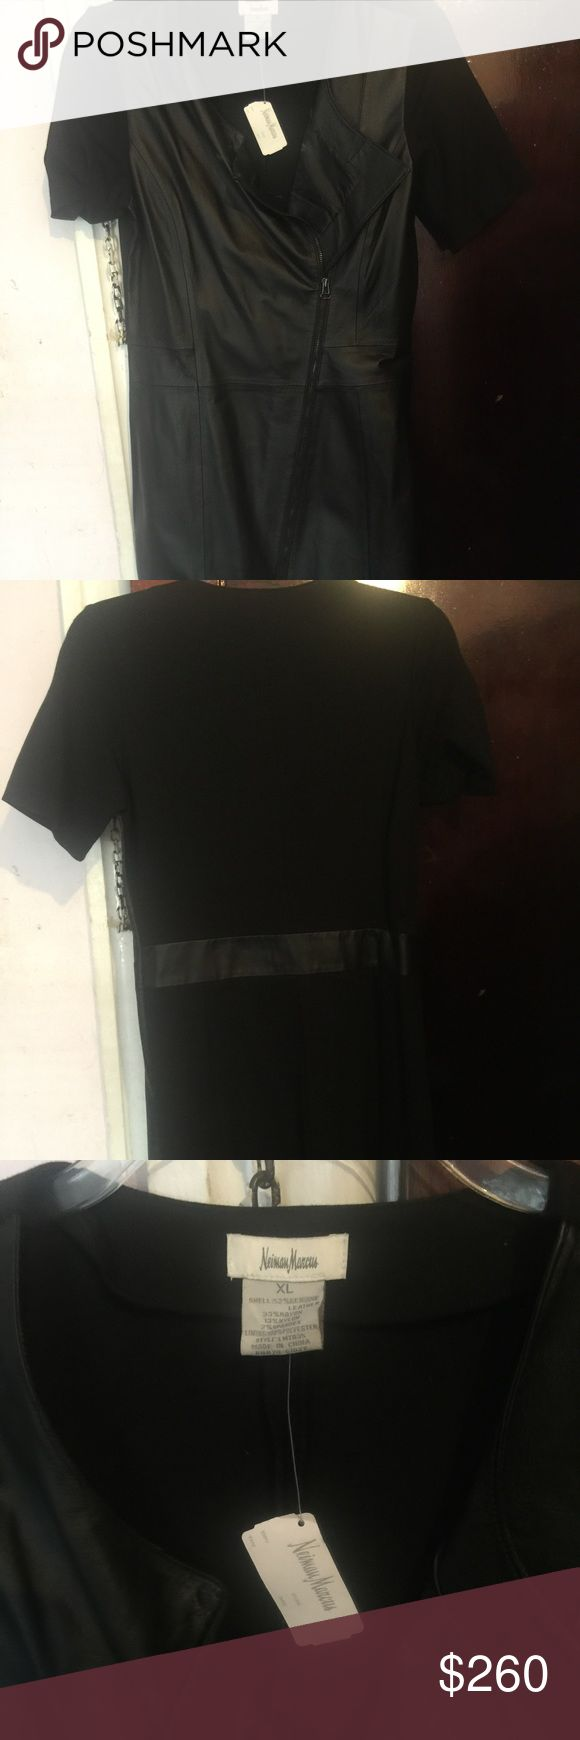 Mid length Neiman Marcus leather dress Mid length fitted leather dress with zip front and spandex back Neiman Marcus Dresses Midi